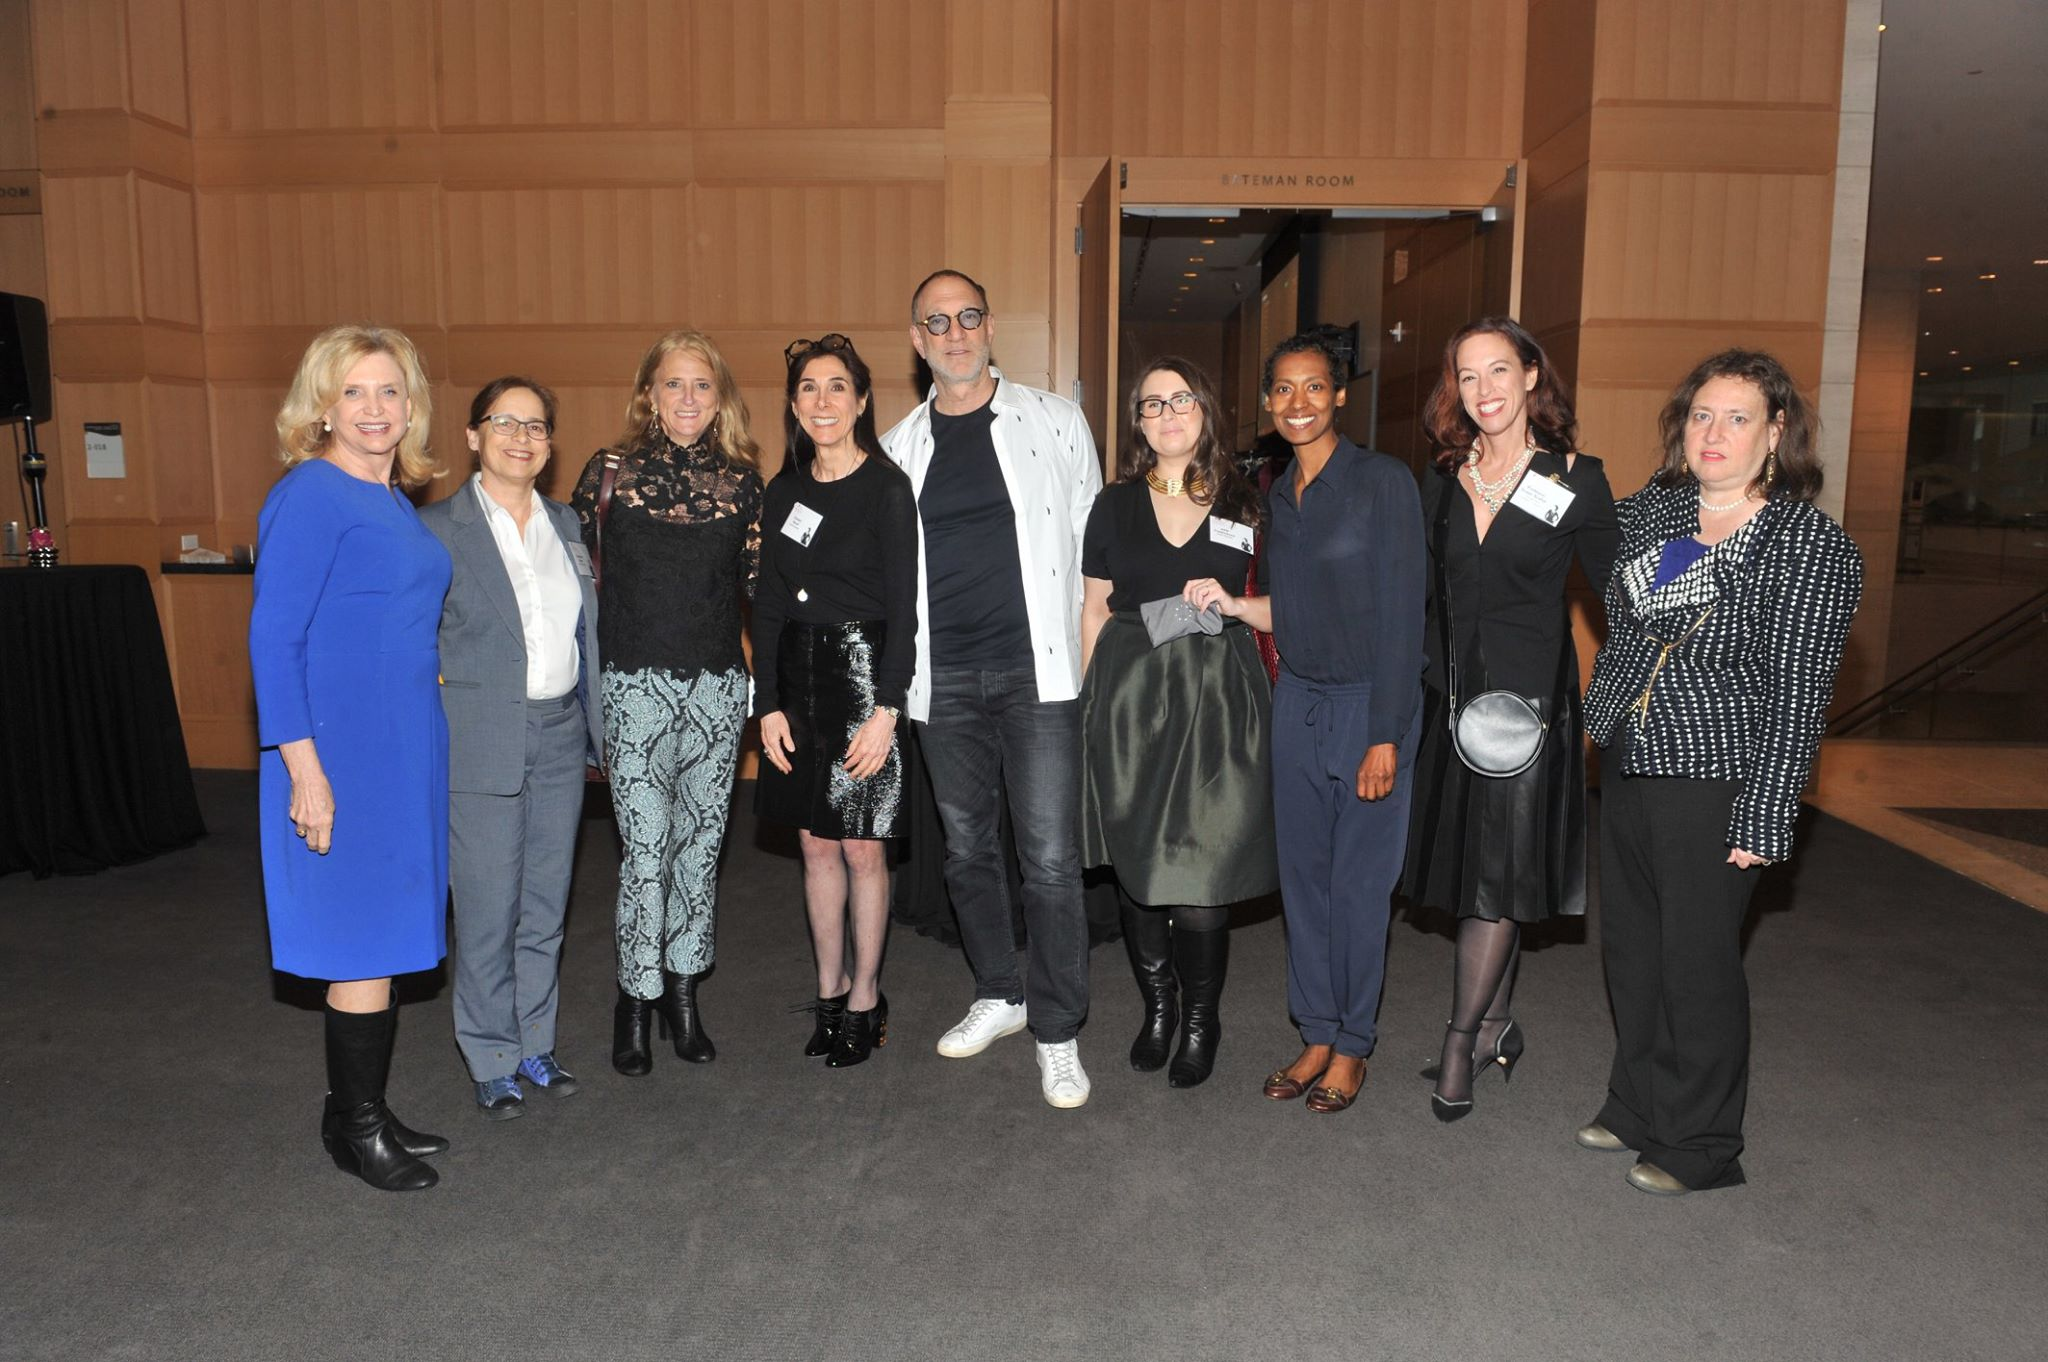 7th Annual Symposium's fashion entrepreneurship panel